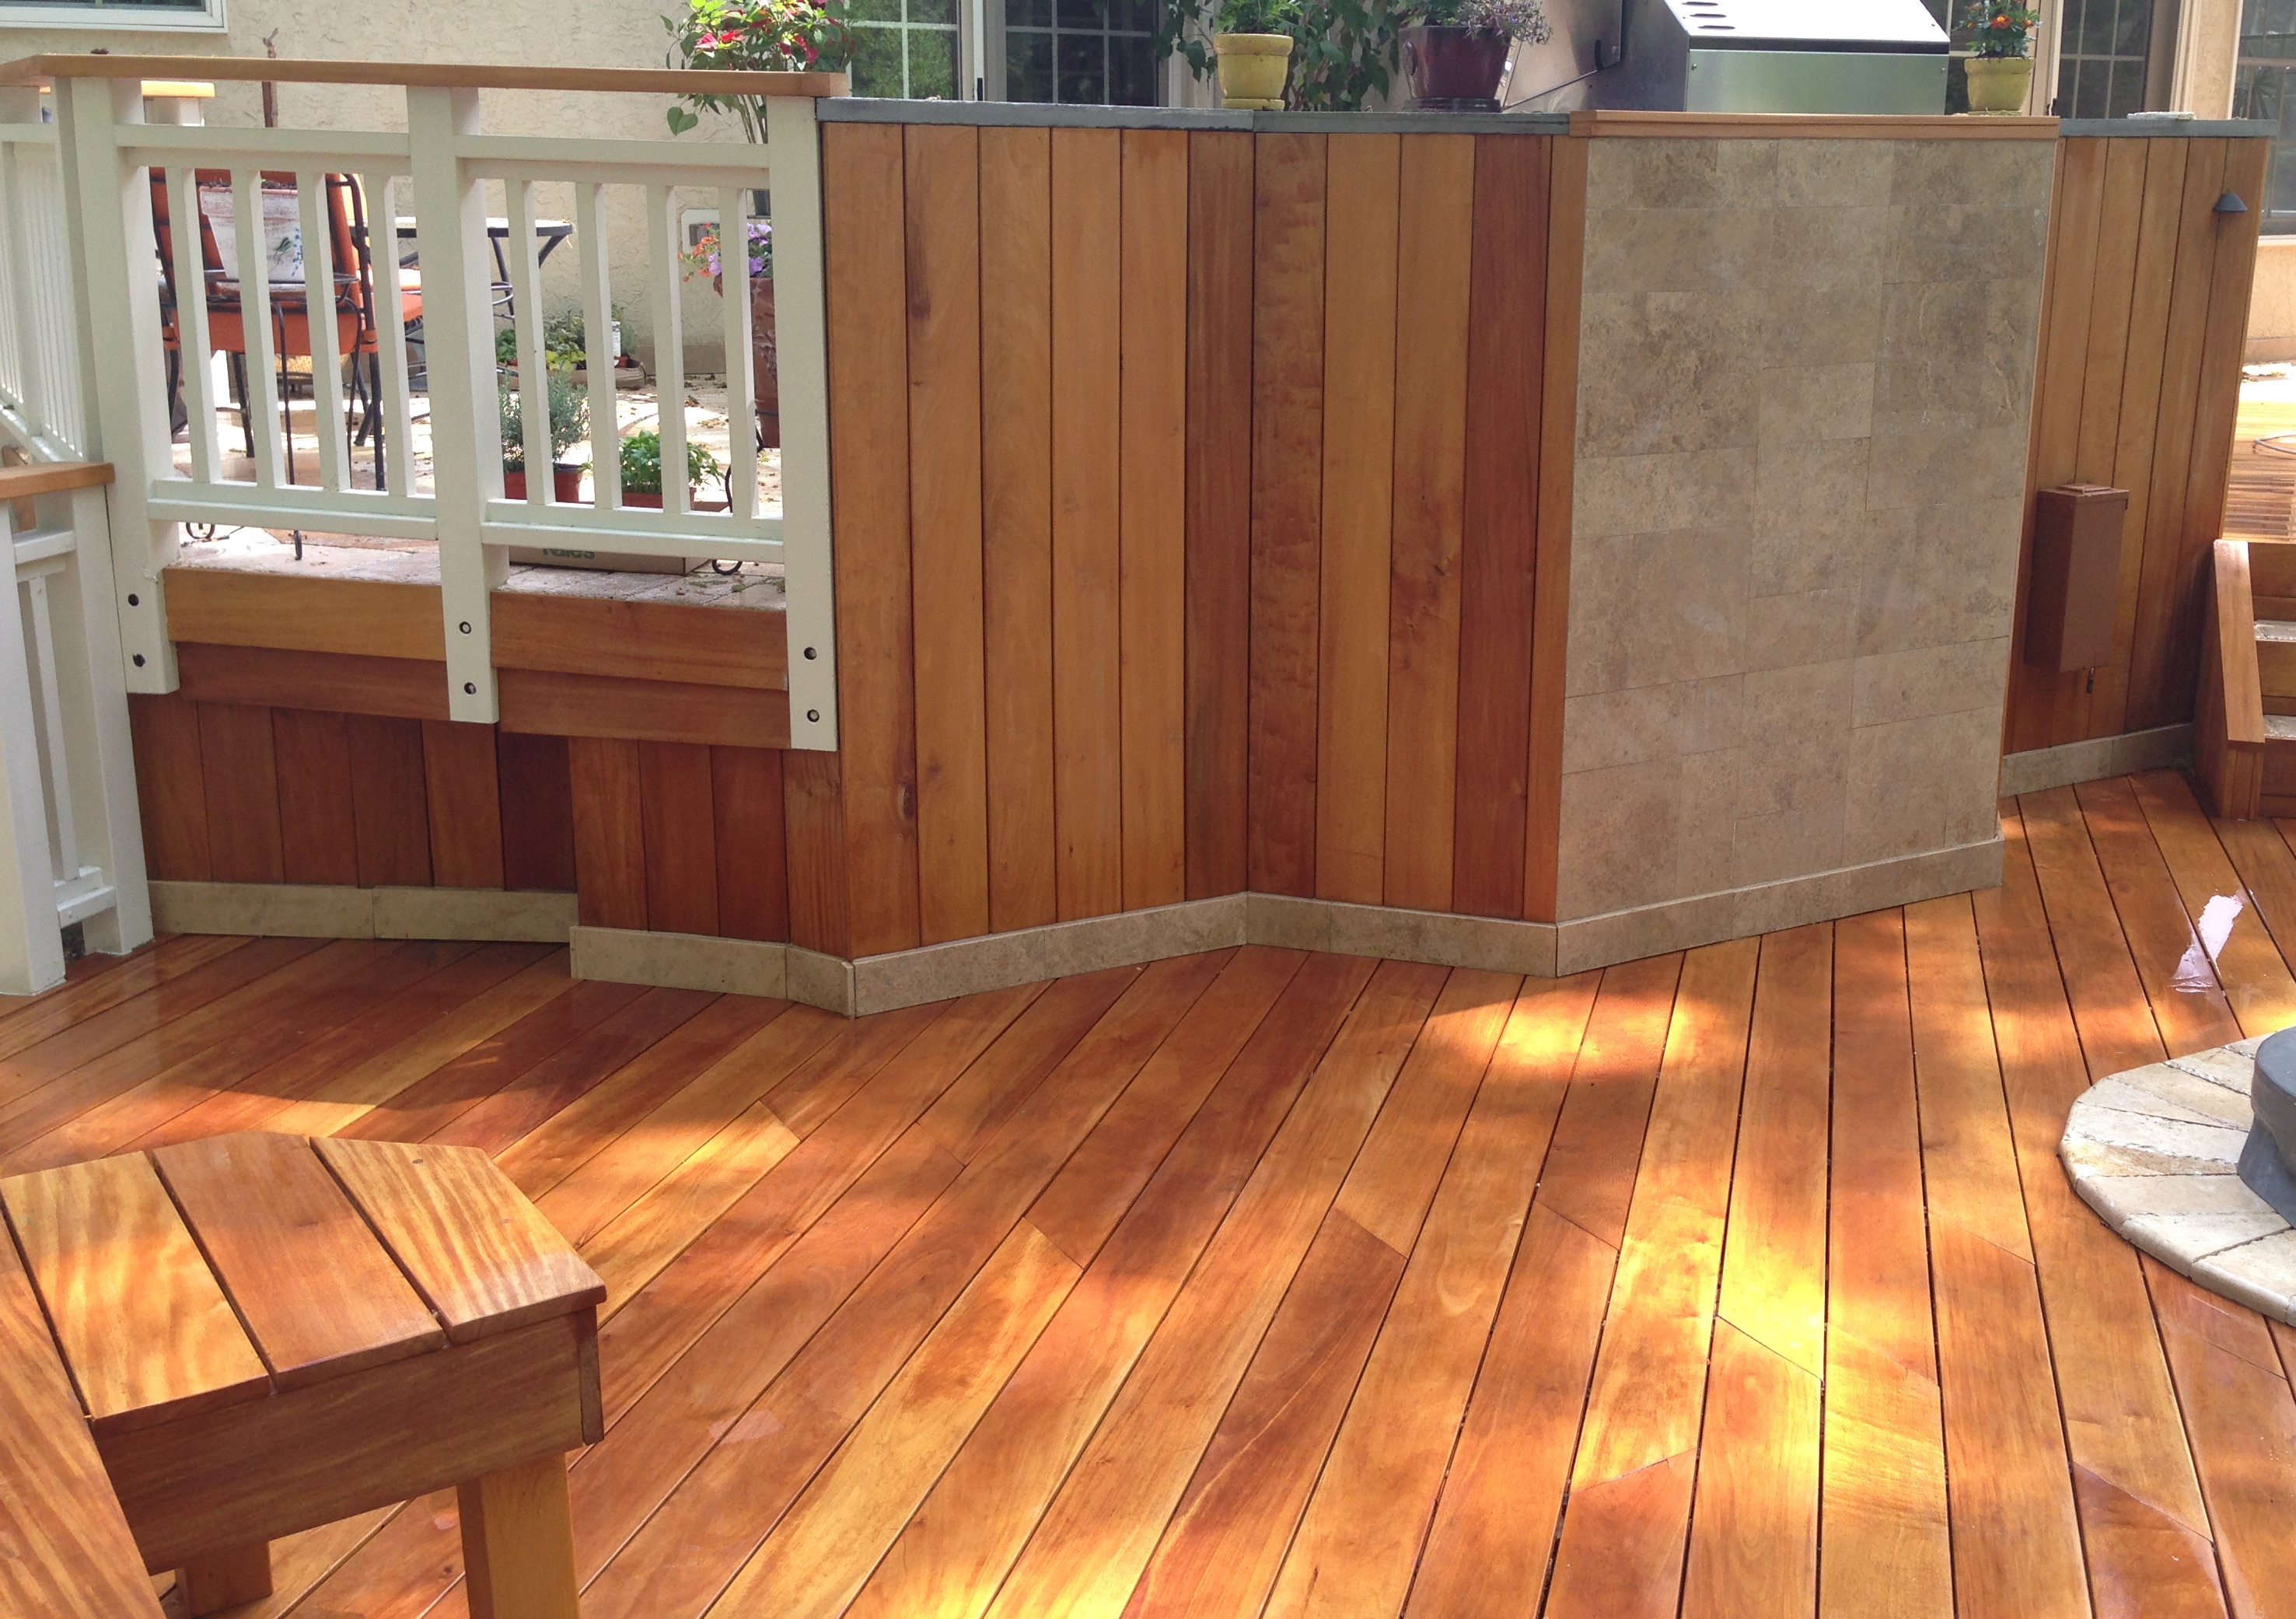 Decks, Patios and Walkways